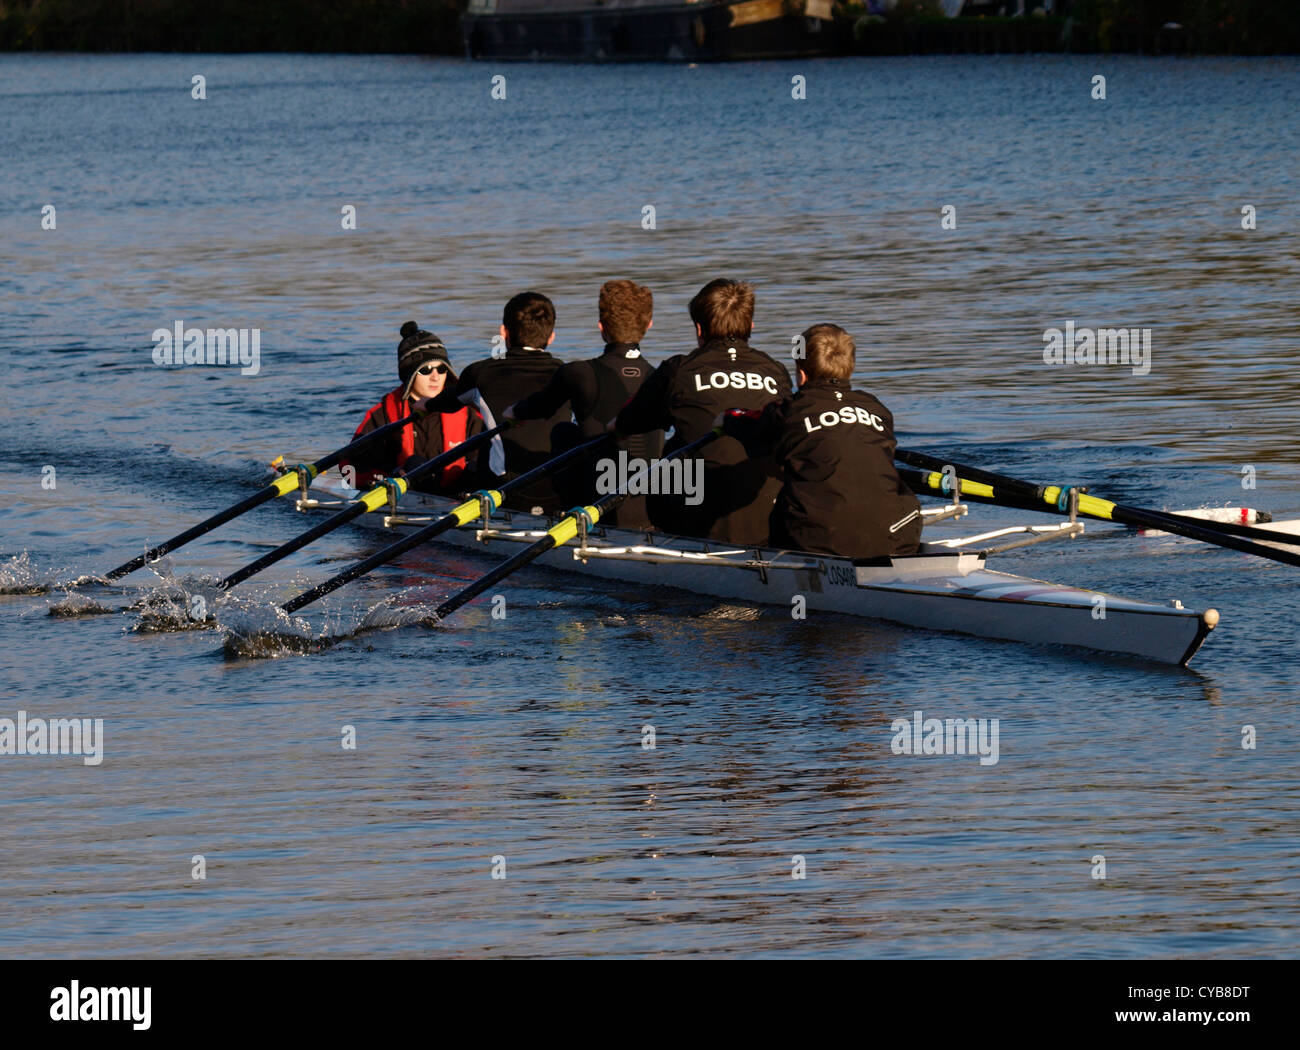 Rowing on the Gloucester and Sharpness Canal, UK - Stock Image